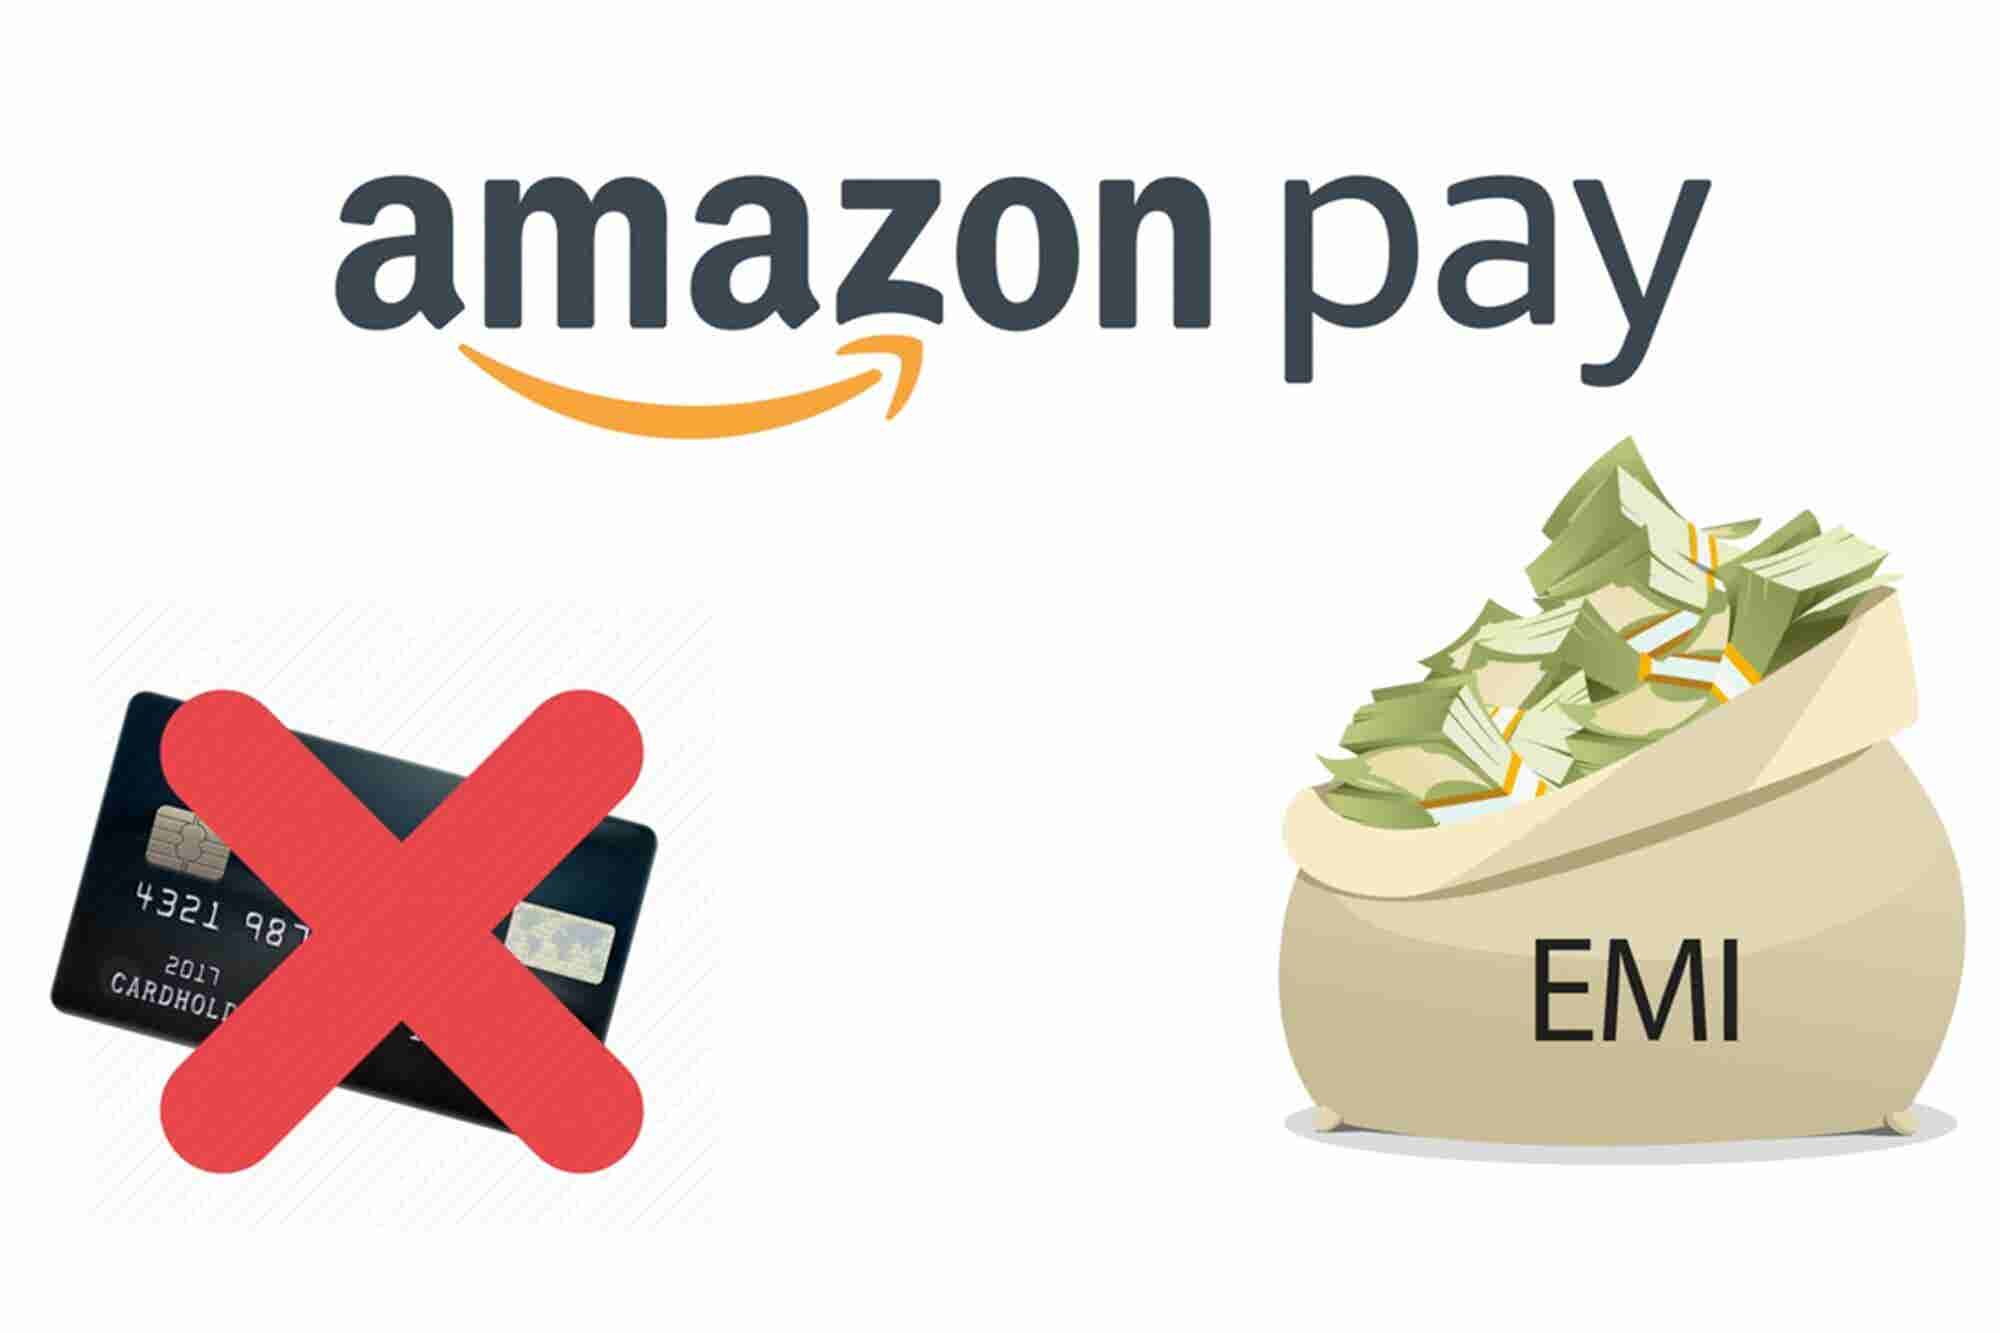 More is No More Birla's & Amazon Pay's Cashless EMI: 4 Things to Know Today